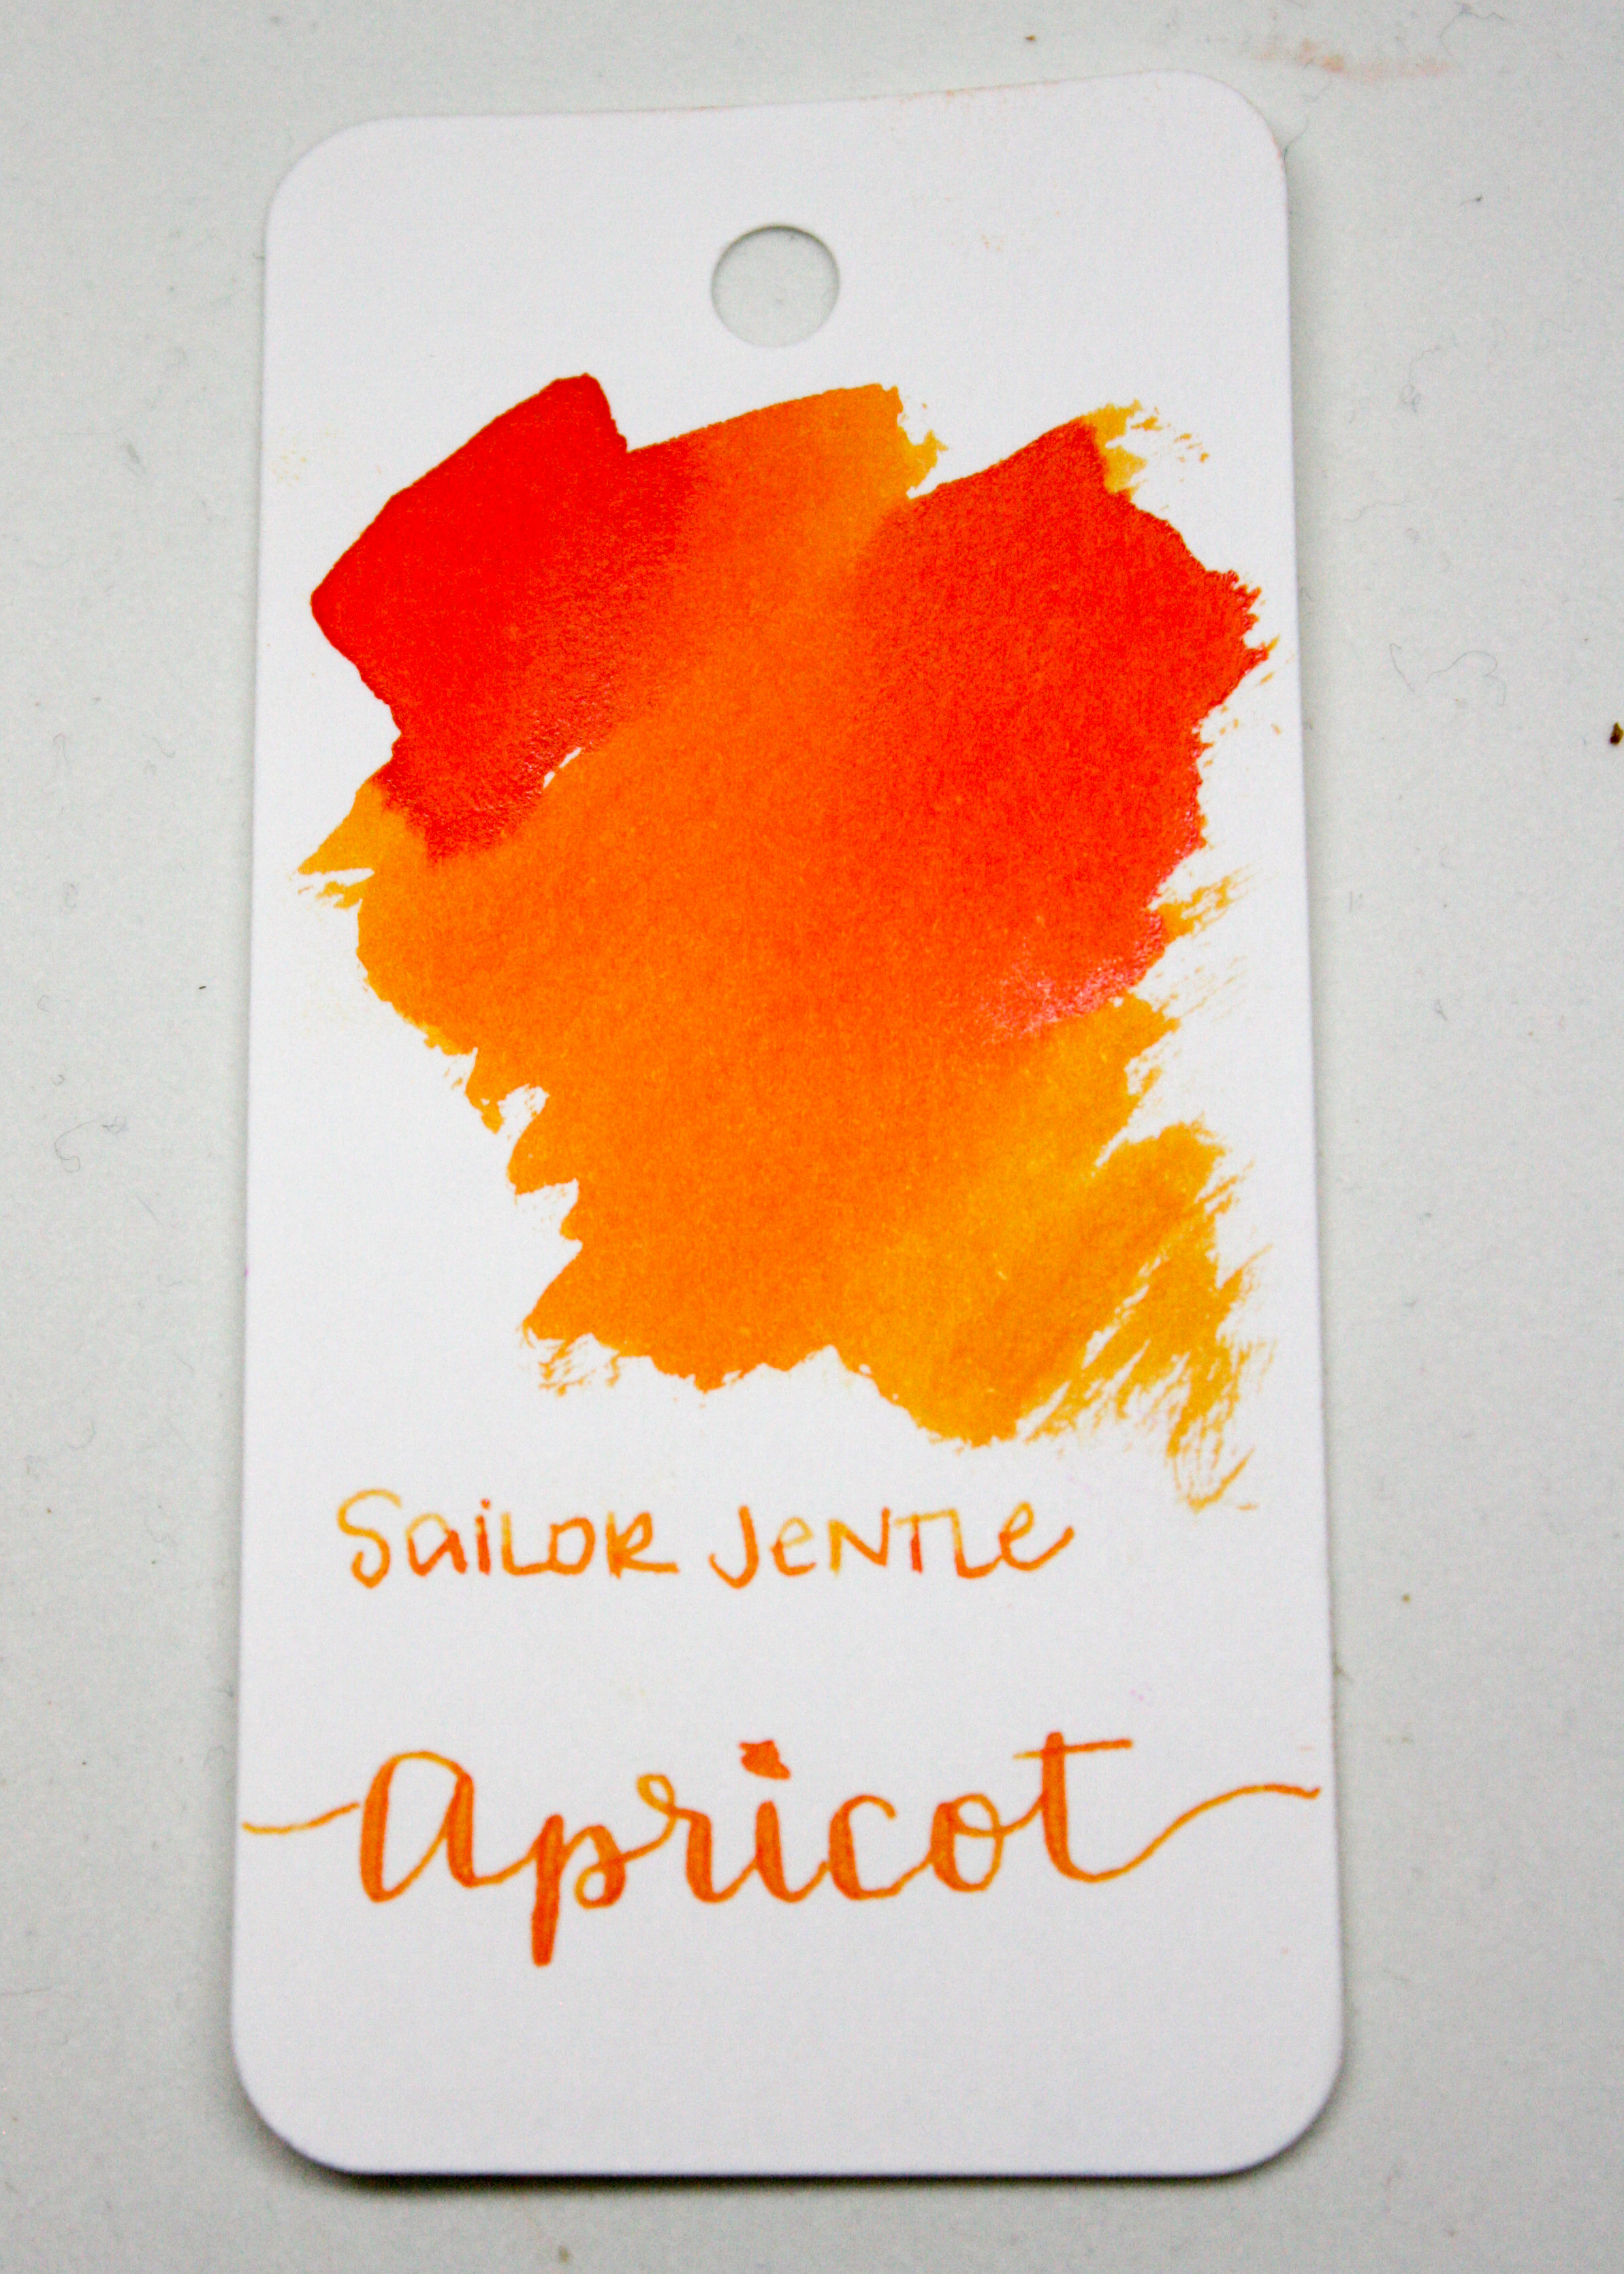 The color... - This ink is a beautiful orange, ranging from yellow orange to red orange. There is shading and a little bit of silver sheen when the ink is concentrated. Seasonally, I think this would be a summer ink.